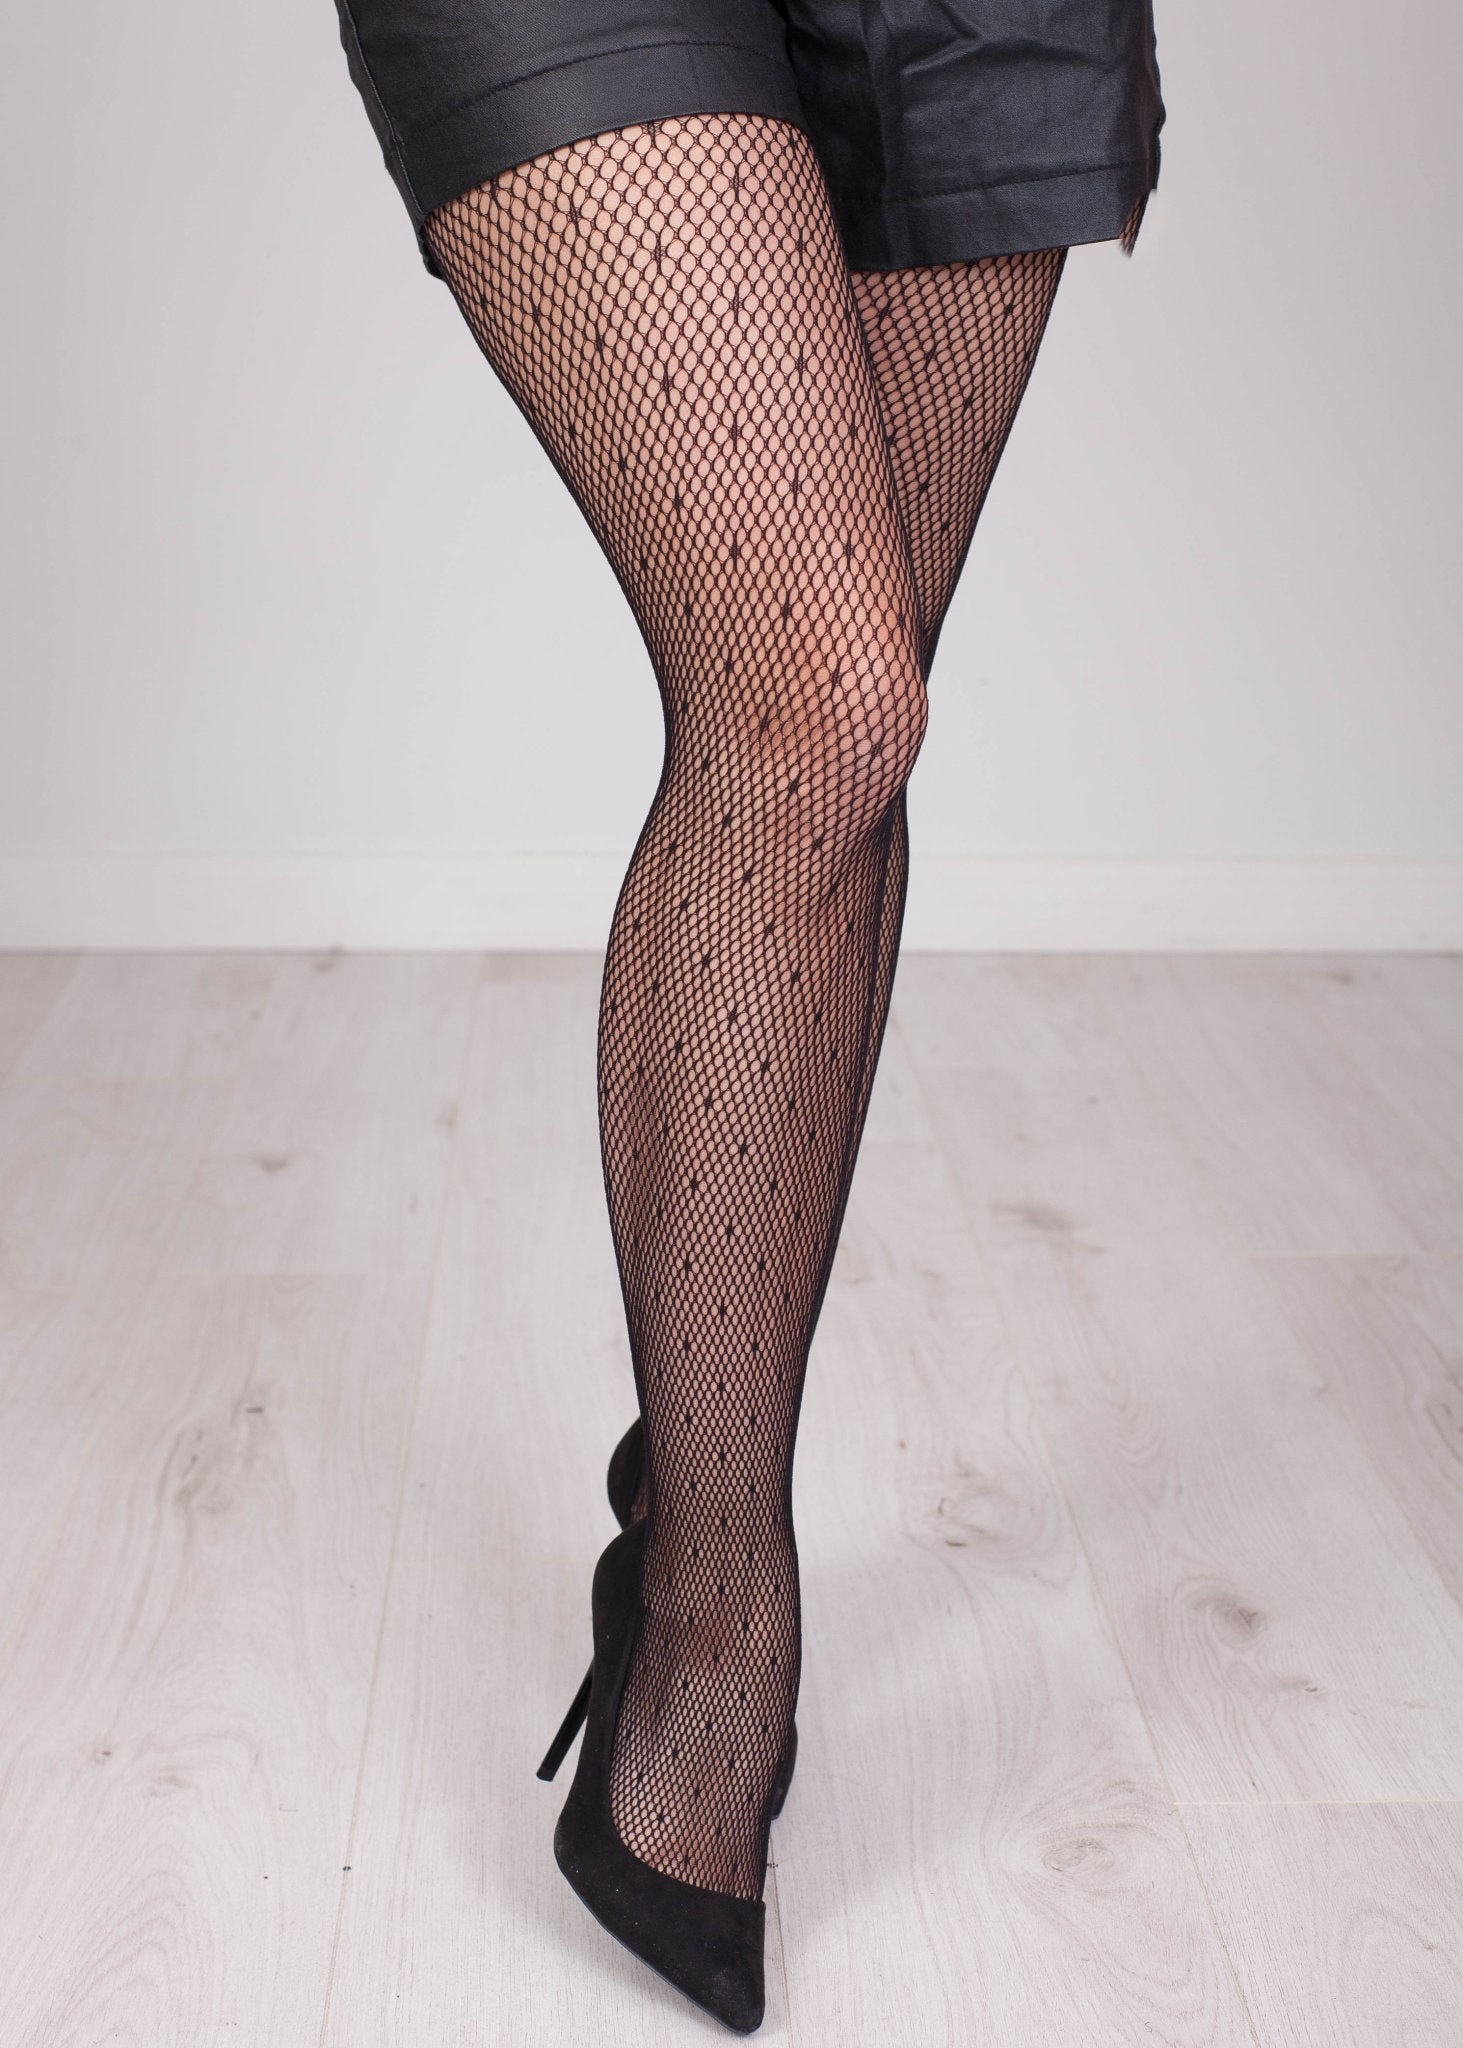 Priya Small Polka Dot Tights - The Walk in Wardrobe